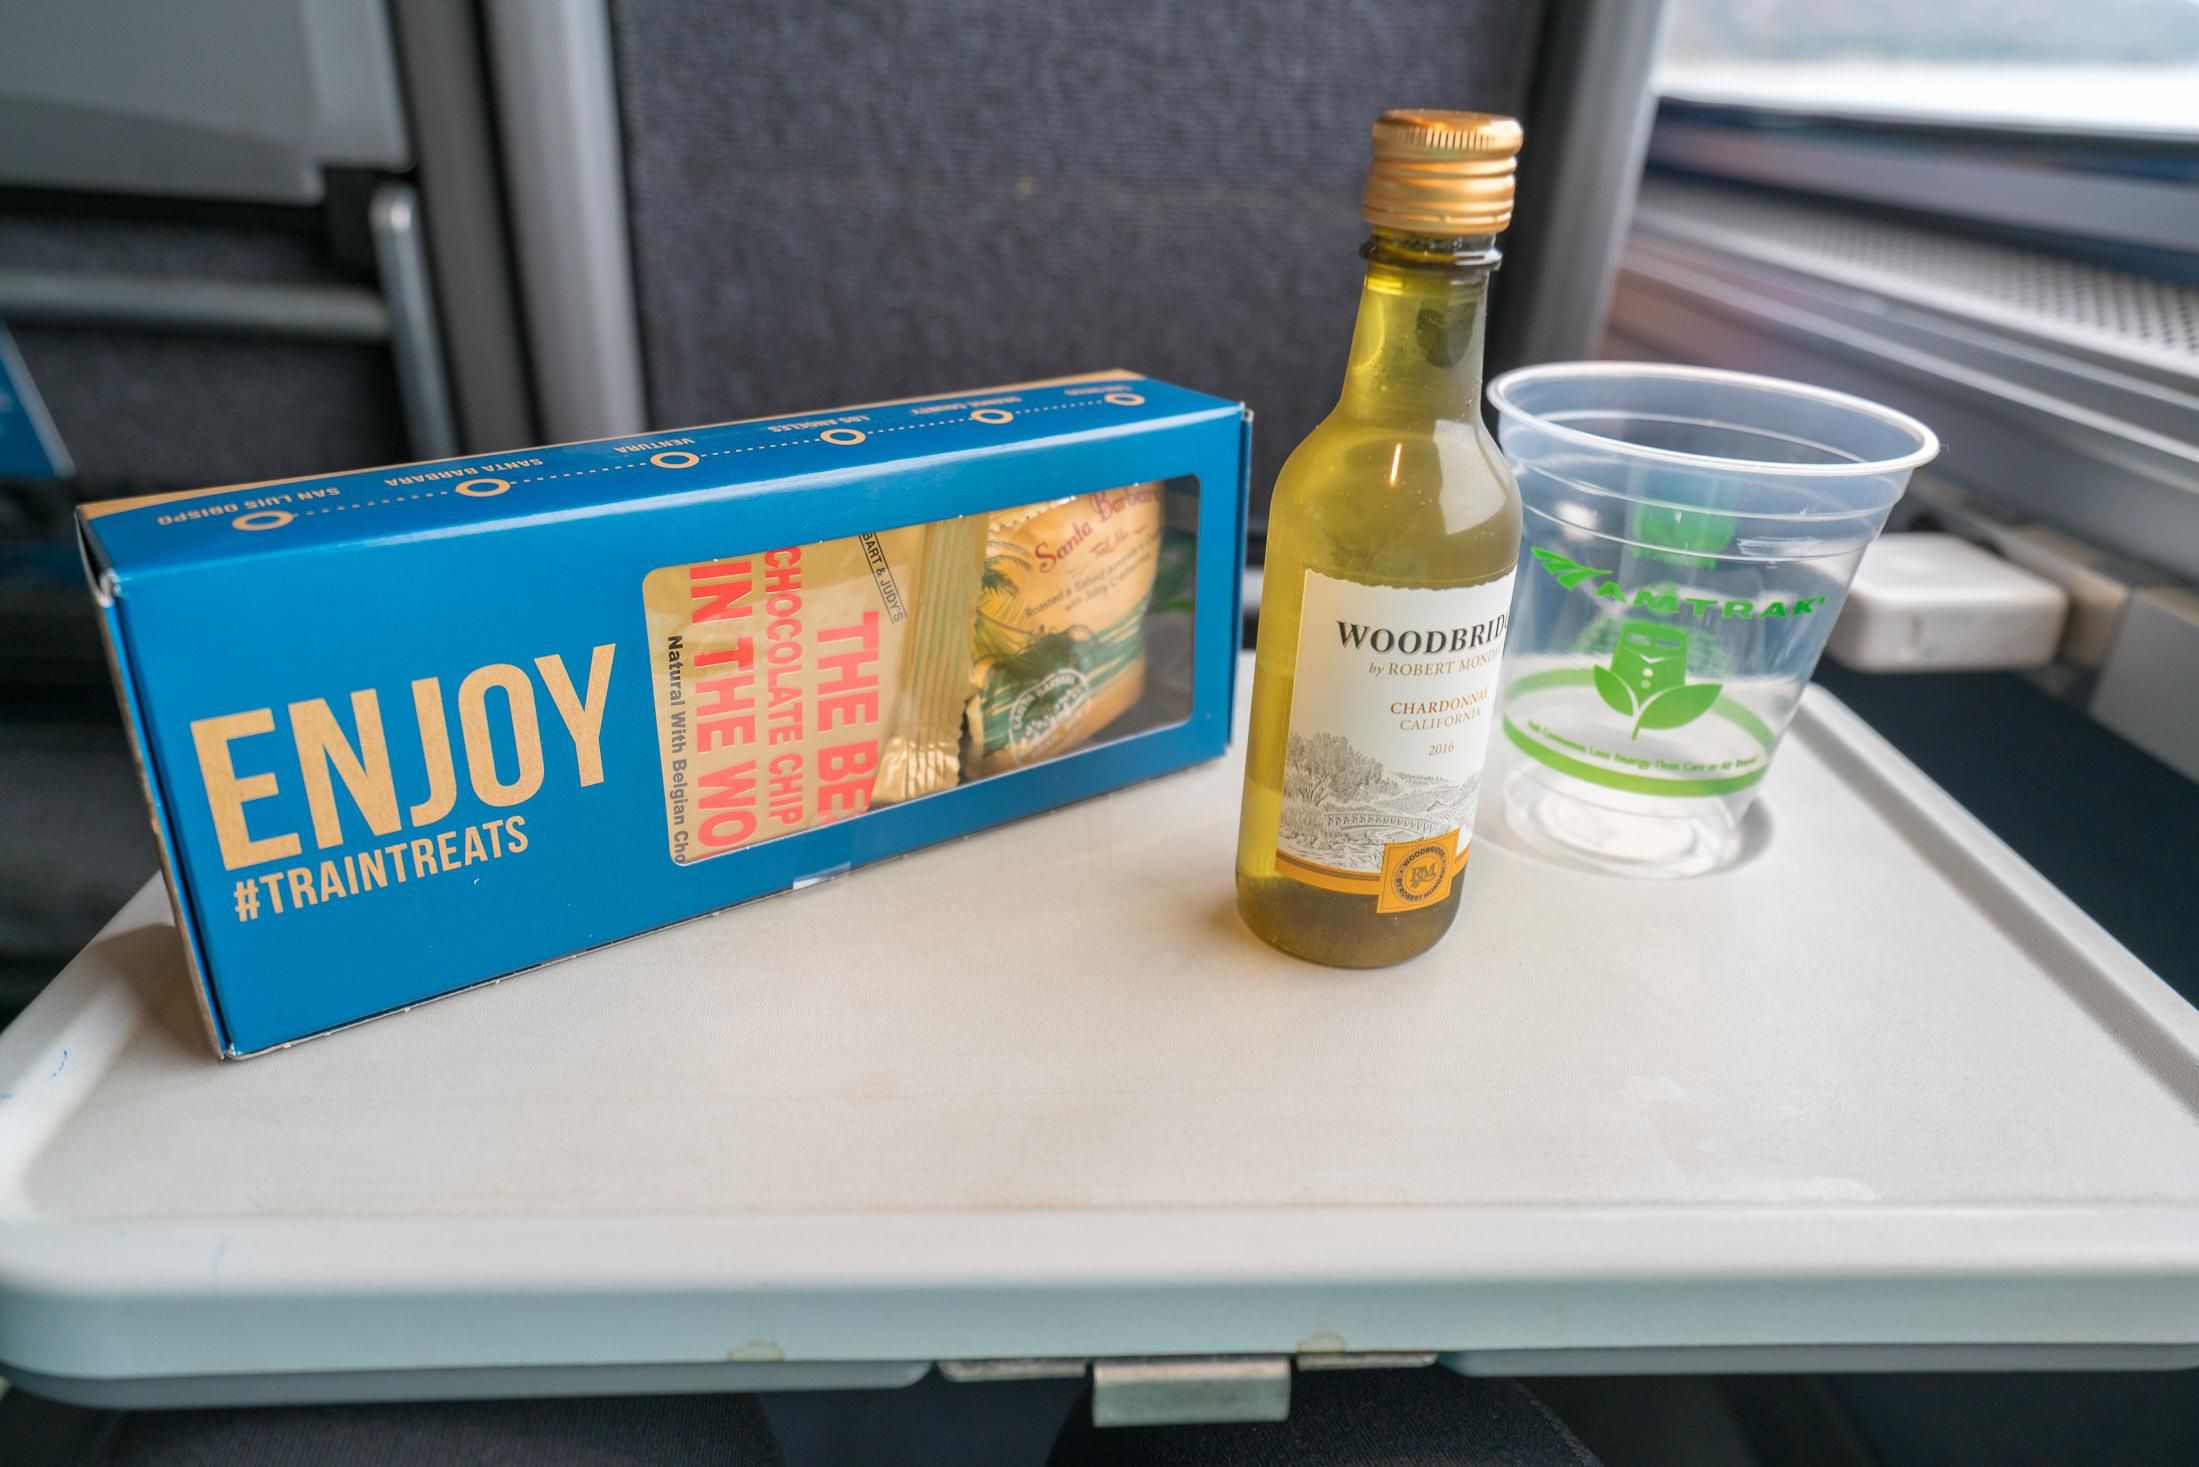 Wine and a snack pack given out in Amtrak business class on the Pacific Surfliner train.